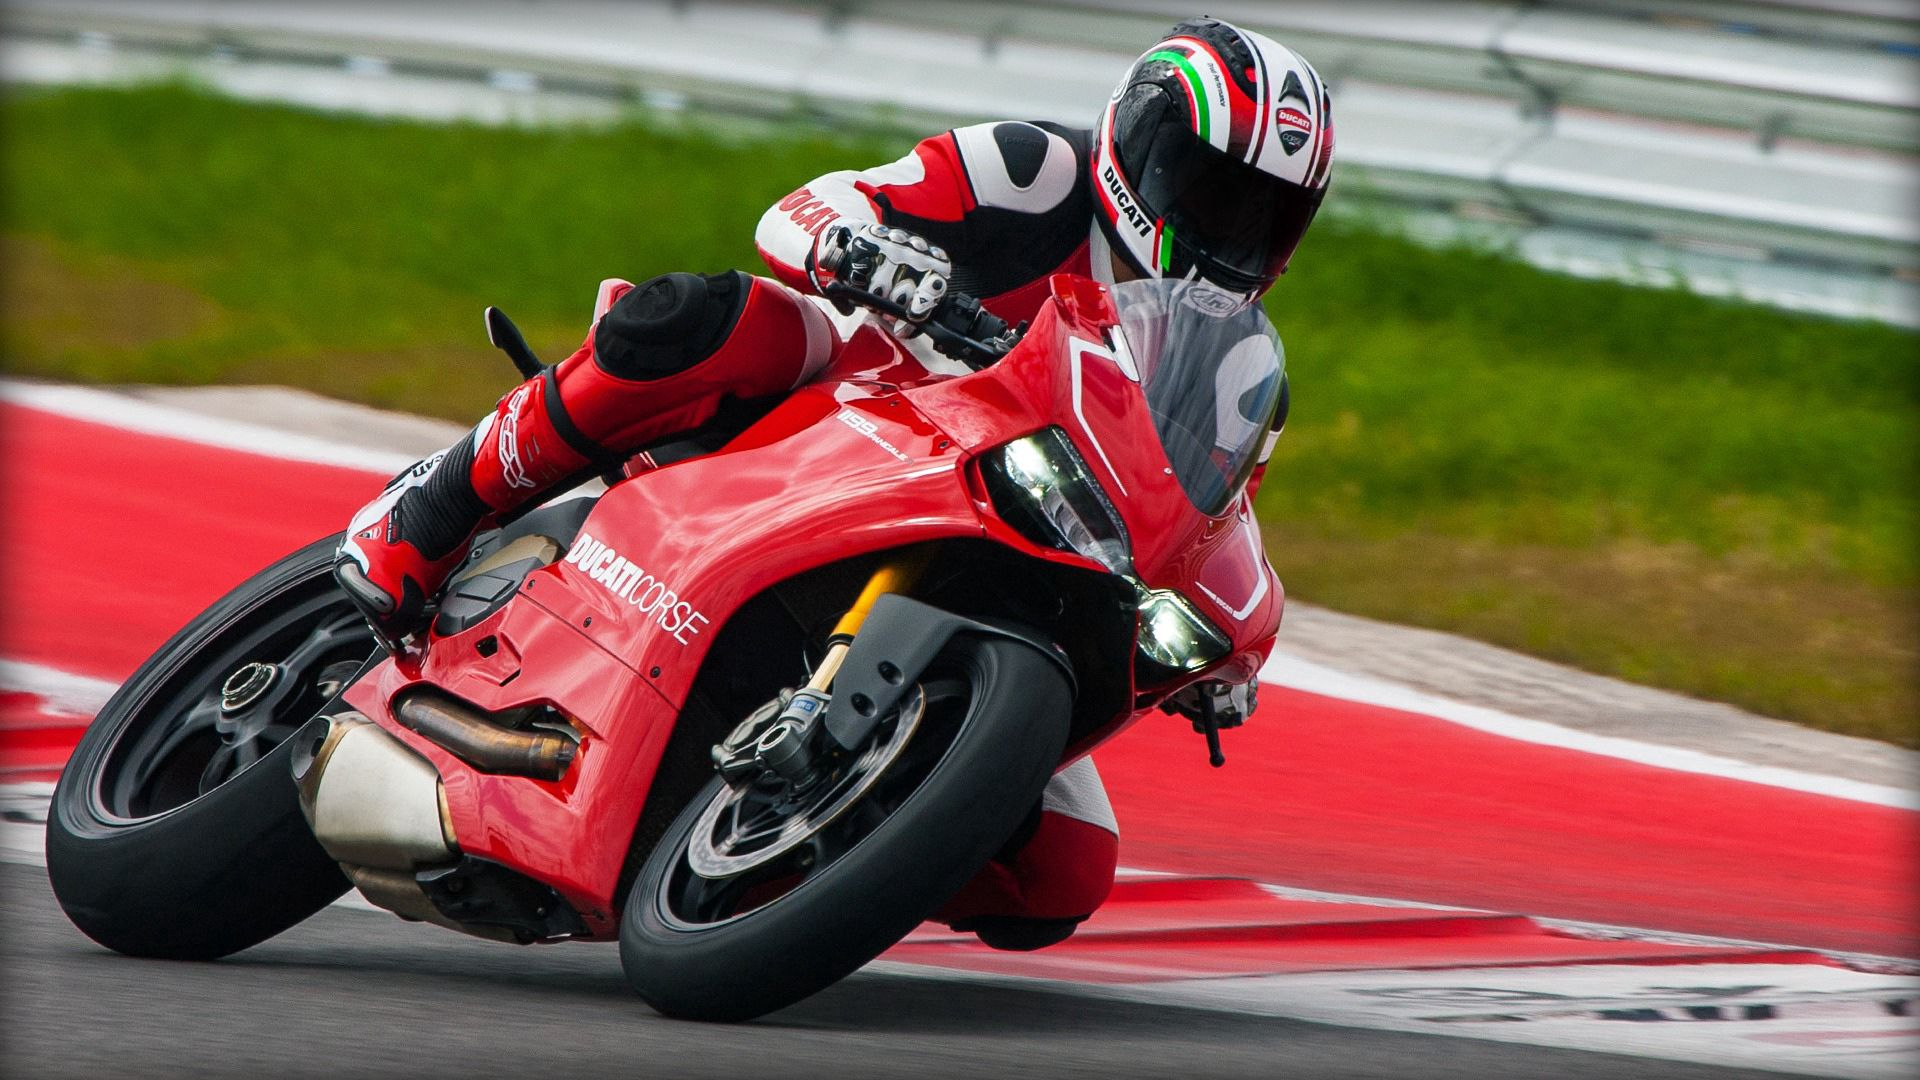 153581 Screensavers and Wallpapers Races for phone. Download Races, Motorcycles, Ducati, Motorcycle, 2013, 1199, Panigale R pictures for free